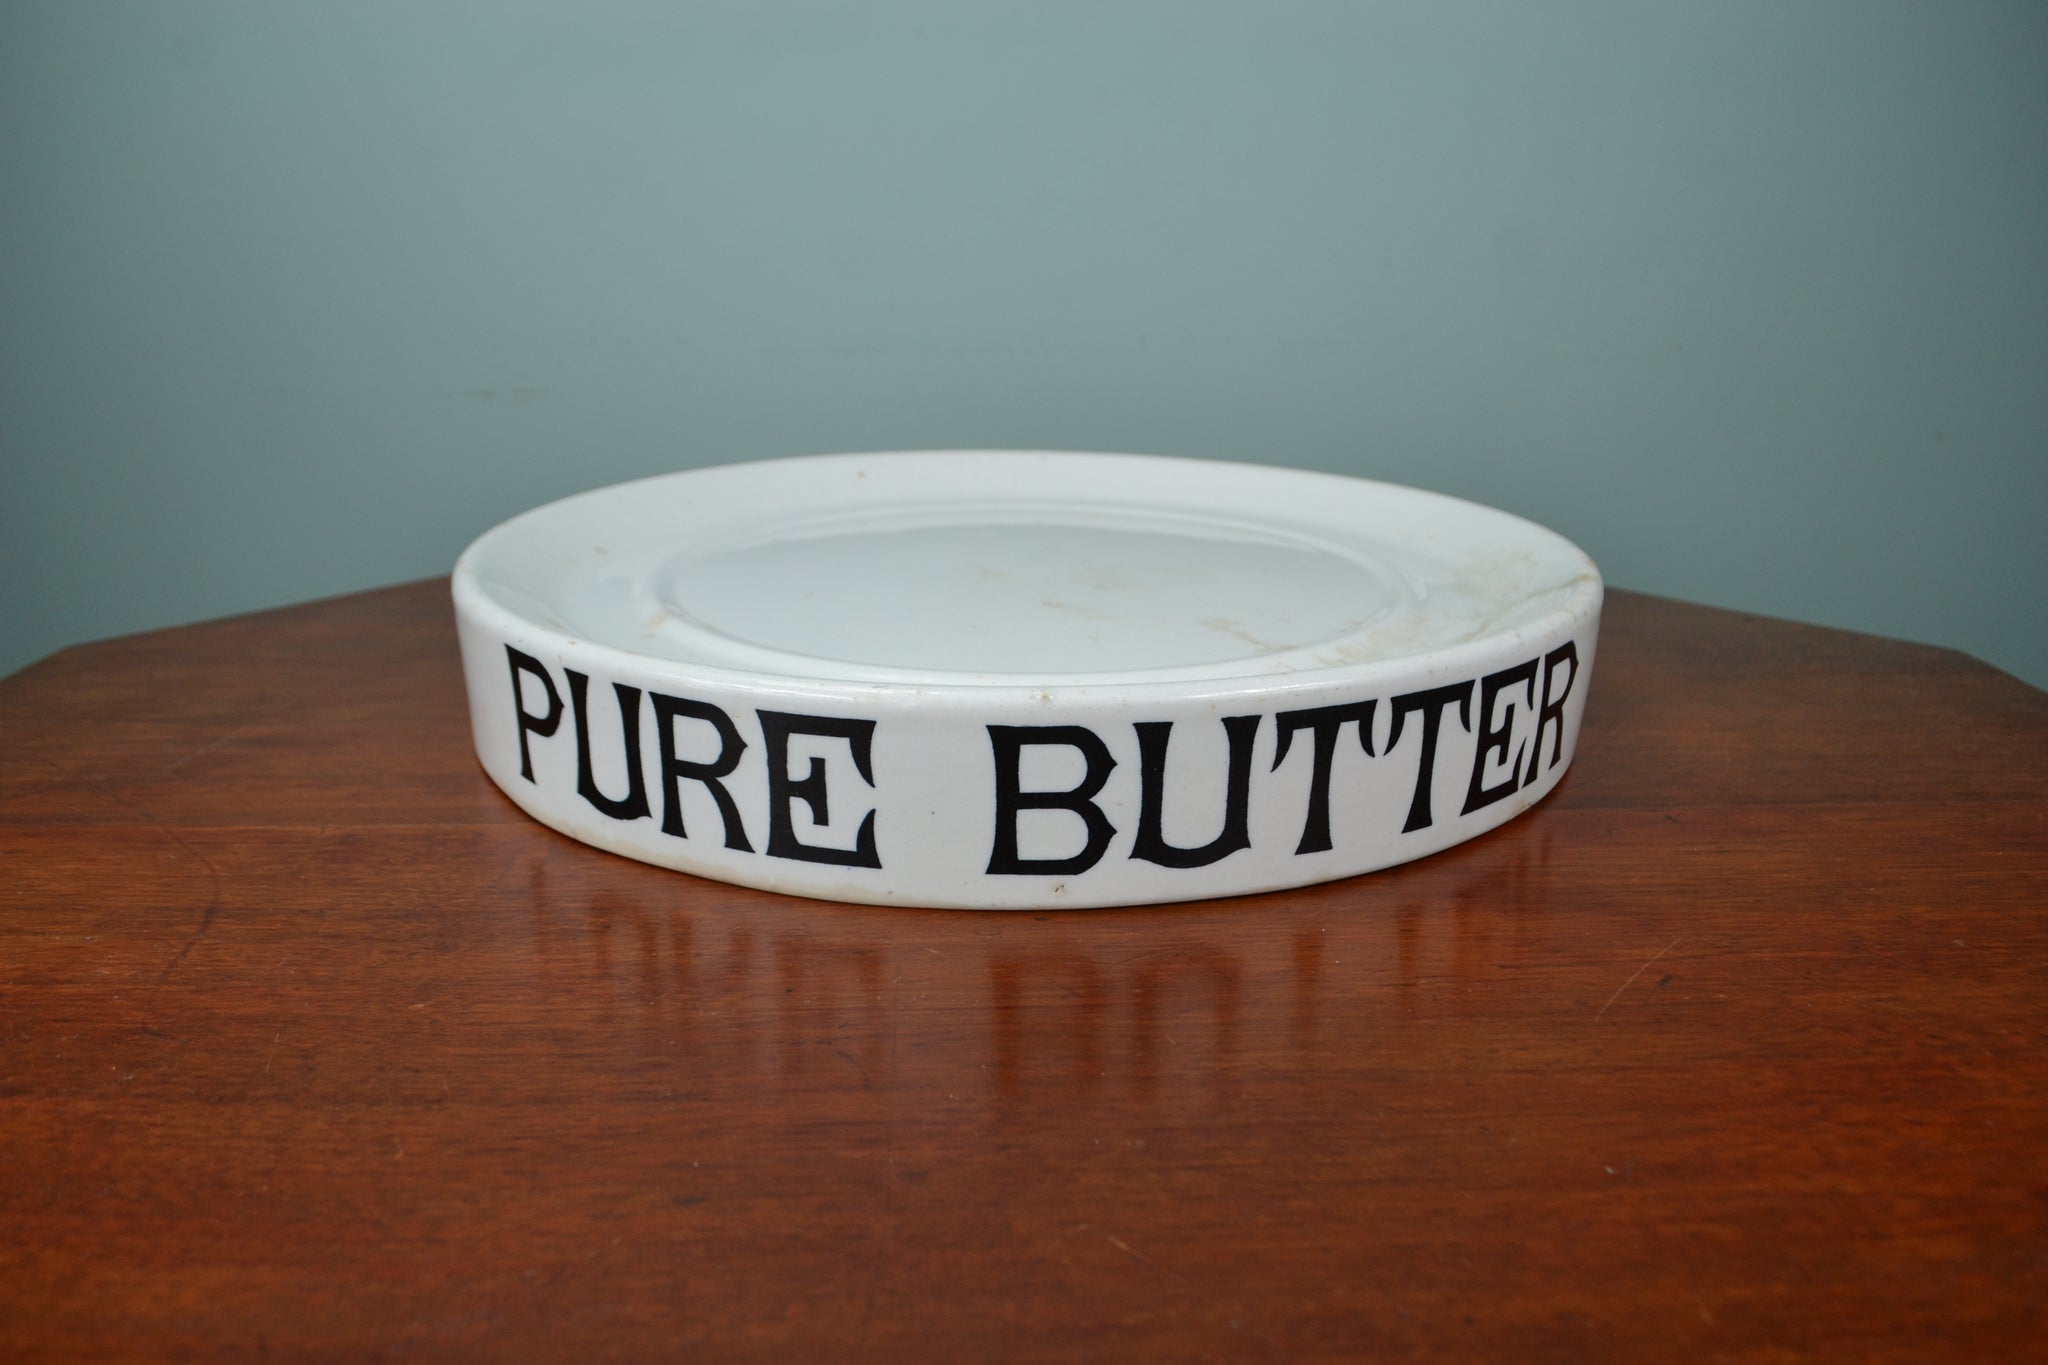 International Tea Co's Stores 'Pure Butter' Slab